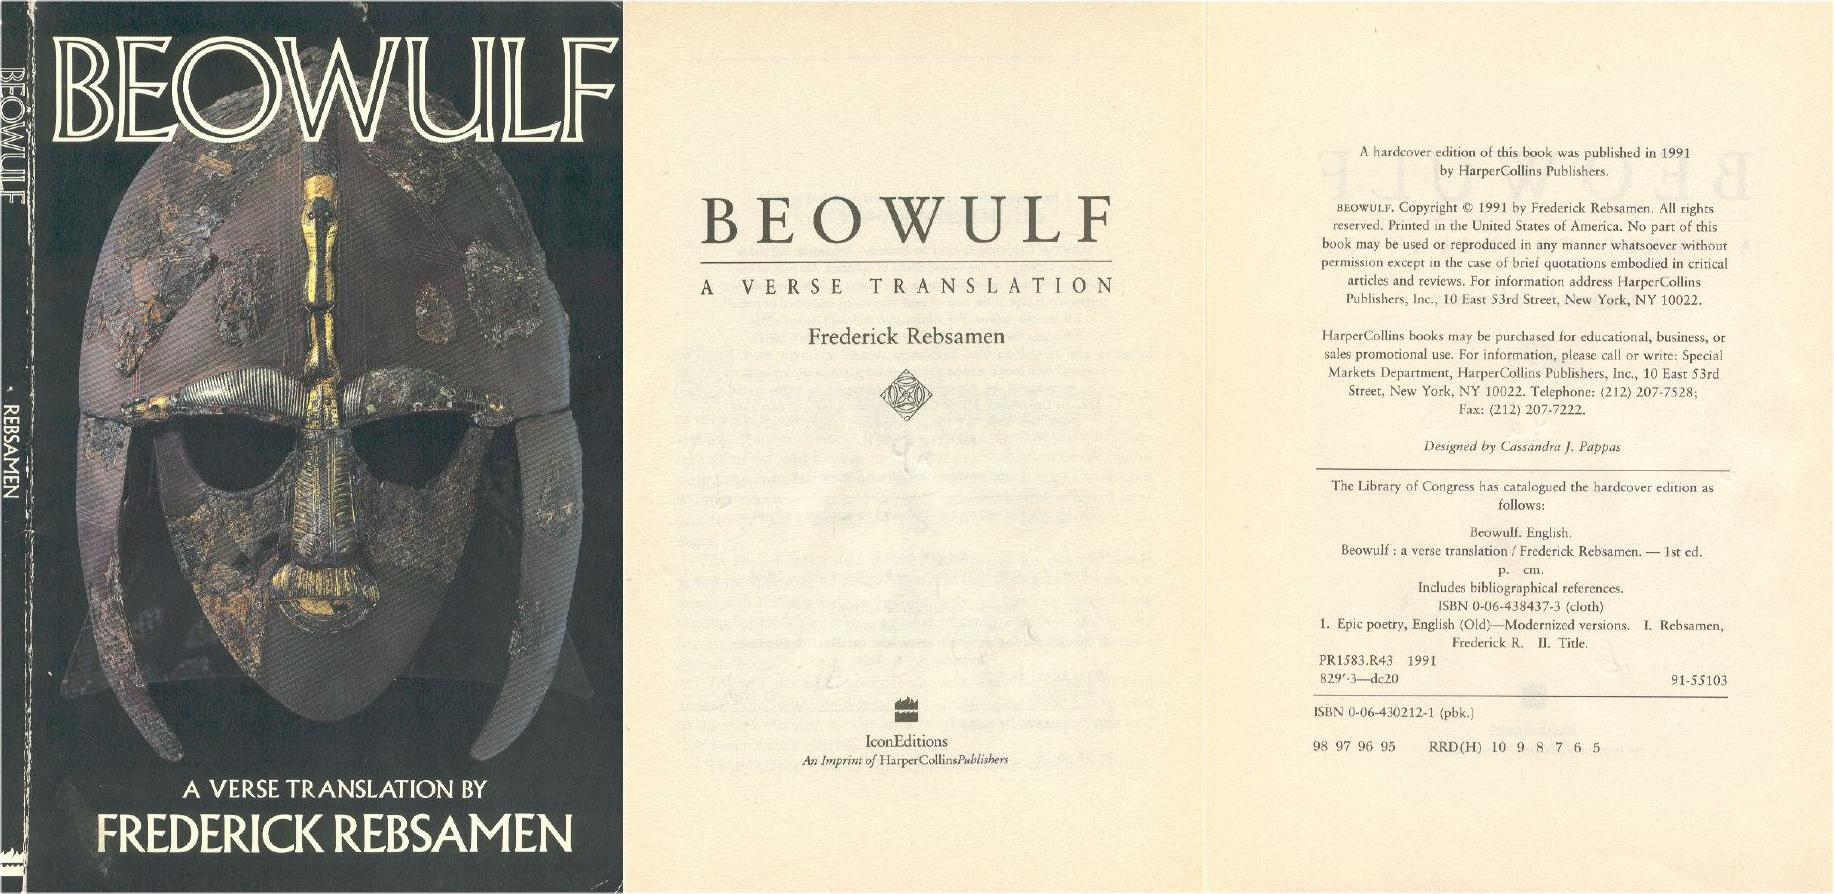 beowulf the monsters and the critics and other essays The monsters and the critics, the single most influential article ever written on beowulf in the poem's 200-year critical history (by the way, the 200th anniversary of the first edition of beowulf will occur in just four years, so there's still time to plan a party.